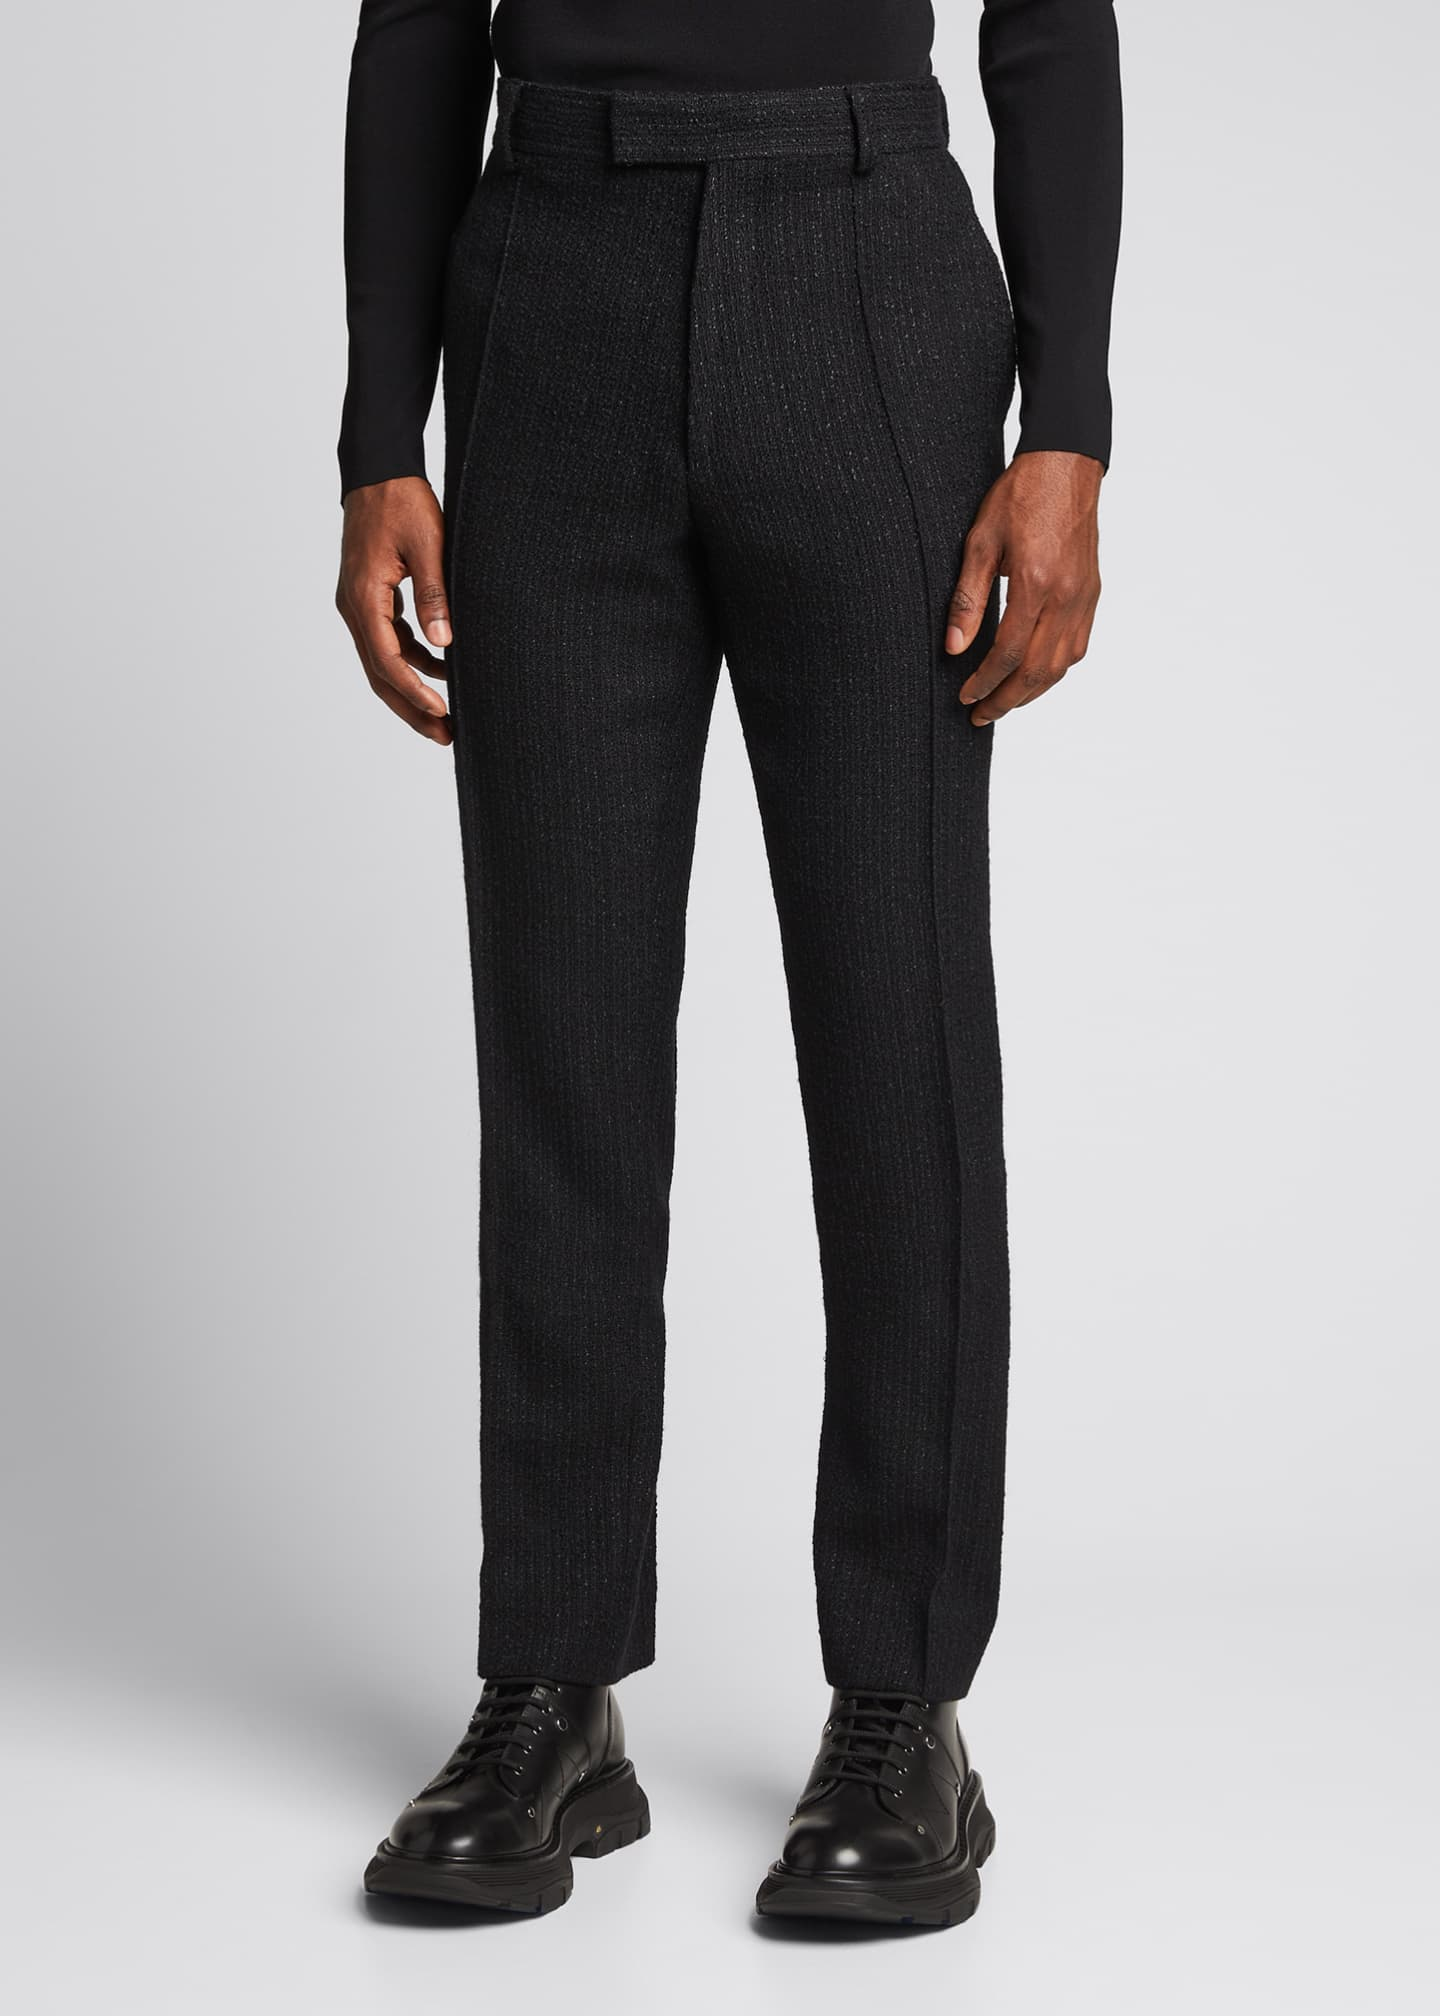 Image 3 of 5: Men's Straight-Leg Boucle Wool-Blend Pants